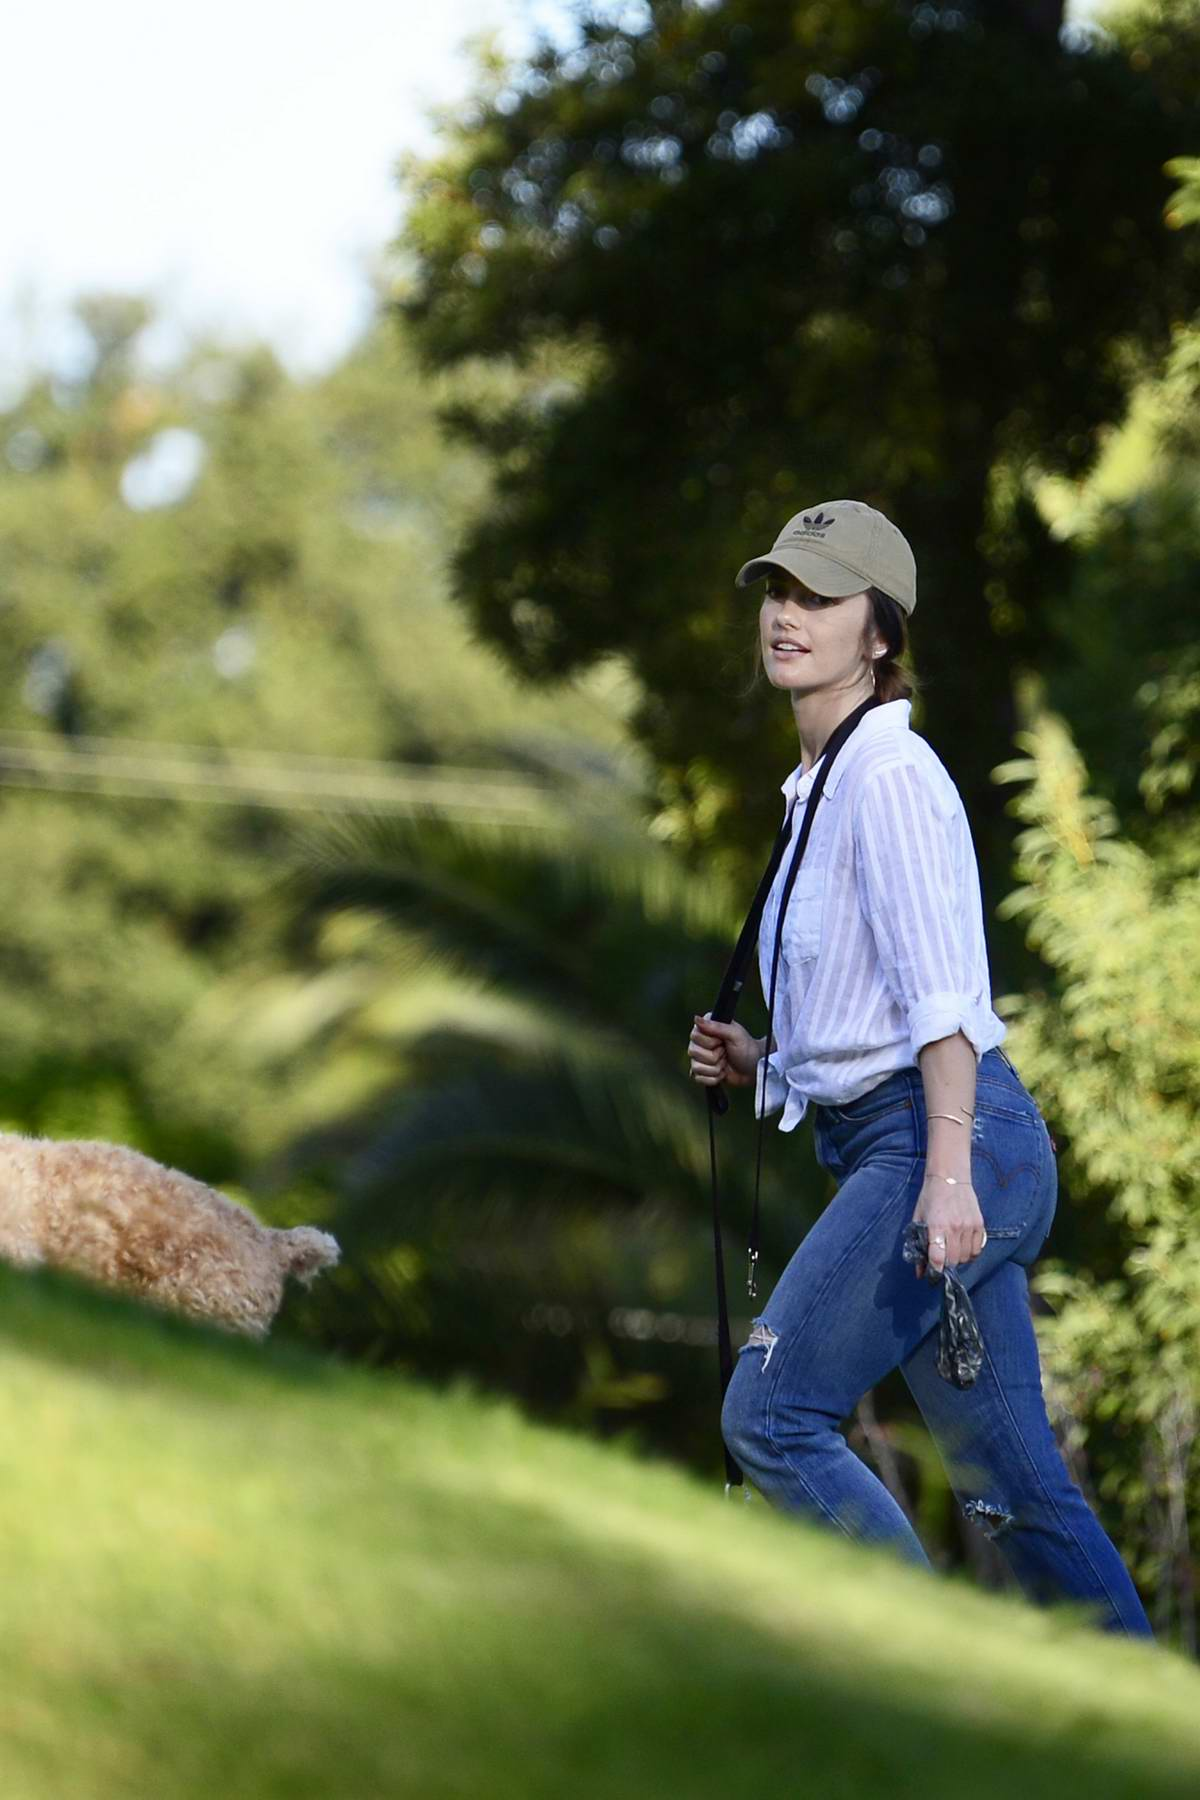 Minka Kelly steps out in a pair of ripped jeans to spend her evening at the park with her dogs in Los Angeles